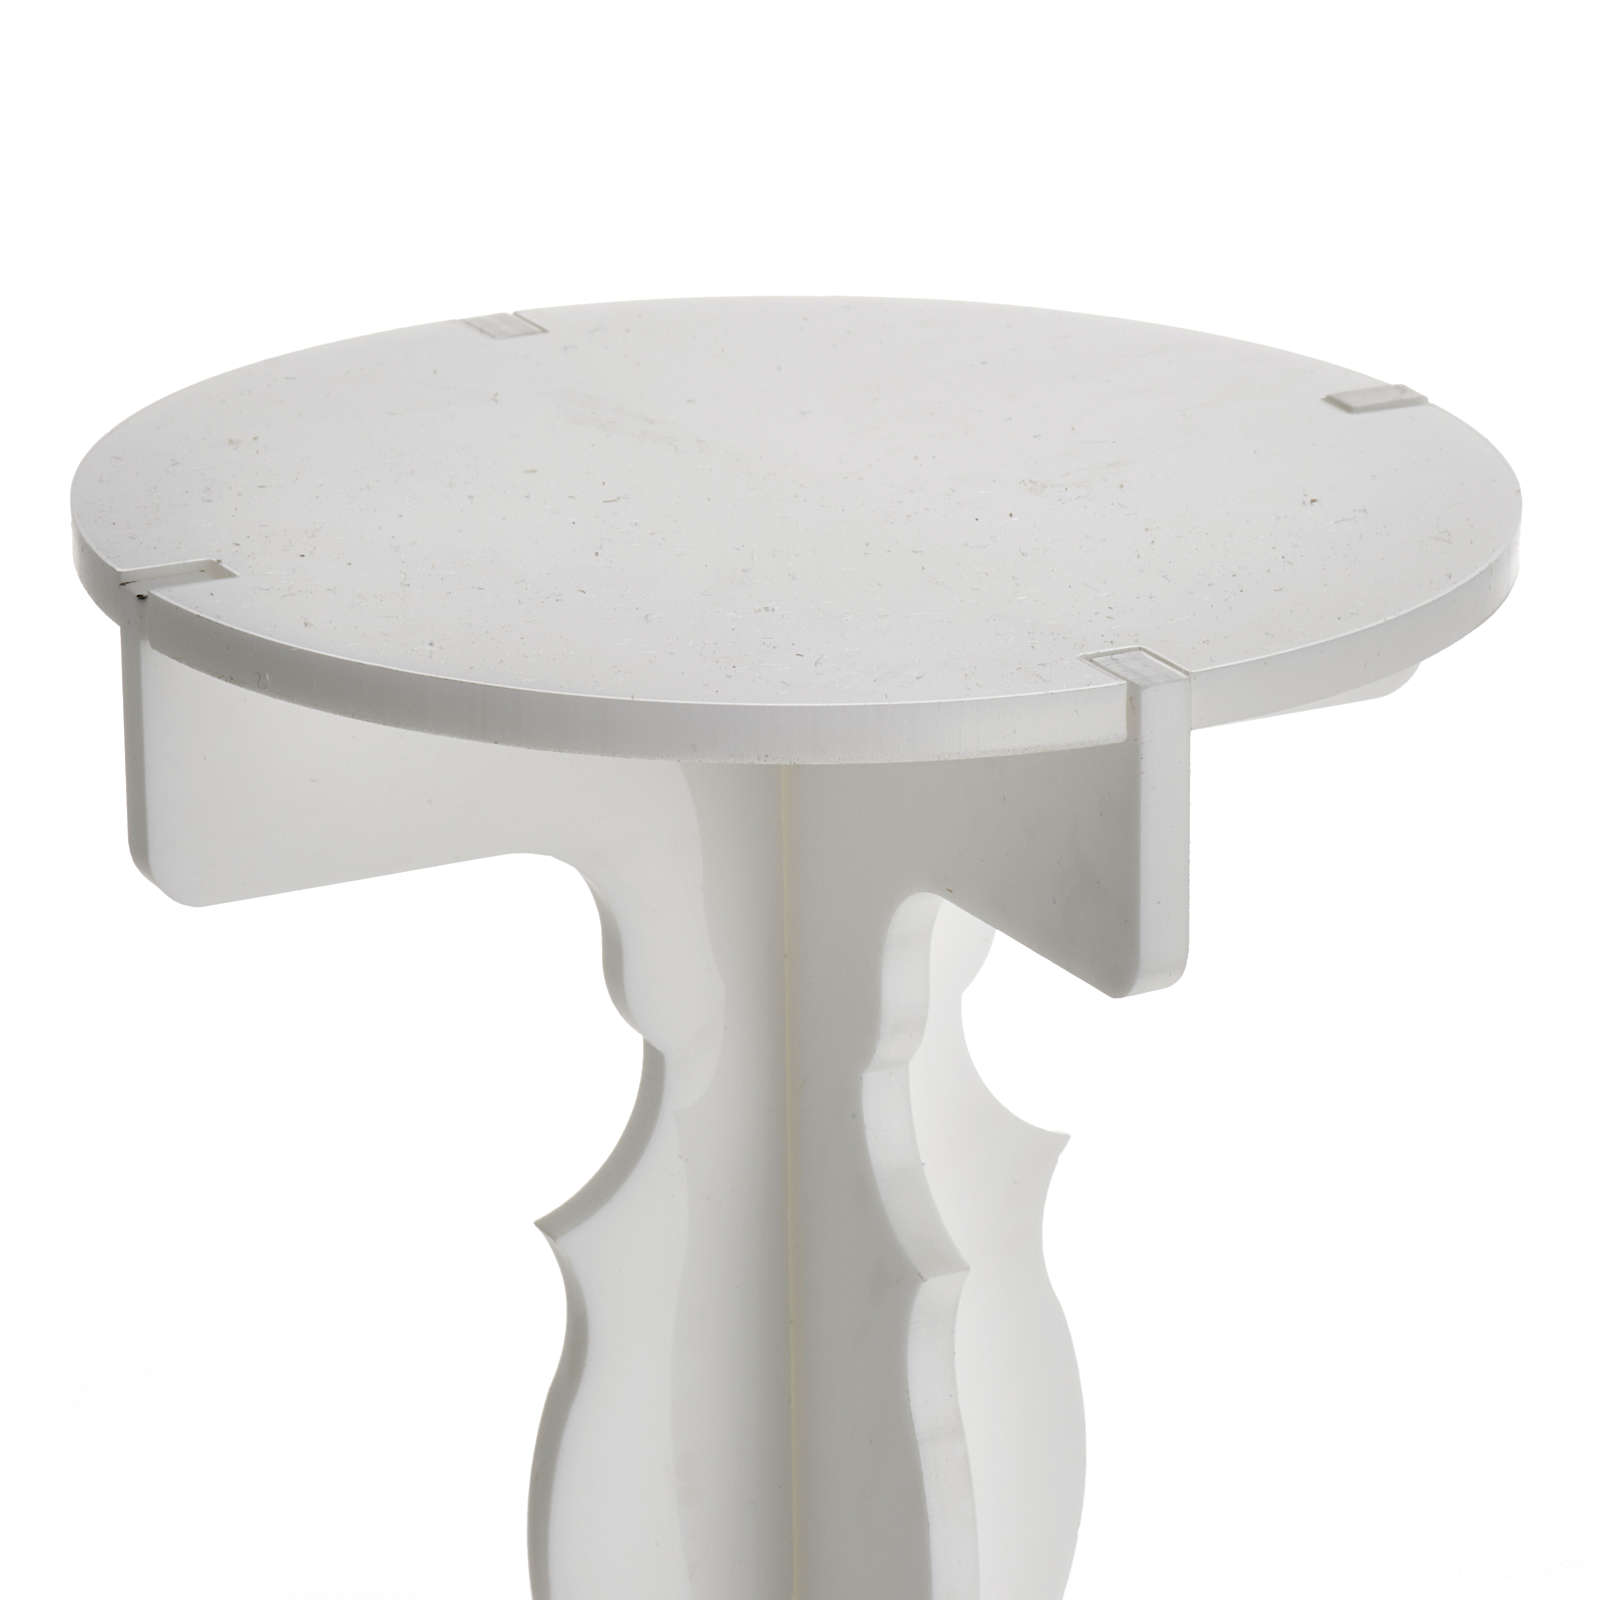 Candlestick in white plexiglass with 5 flames 4